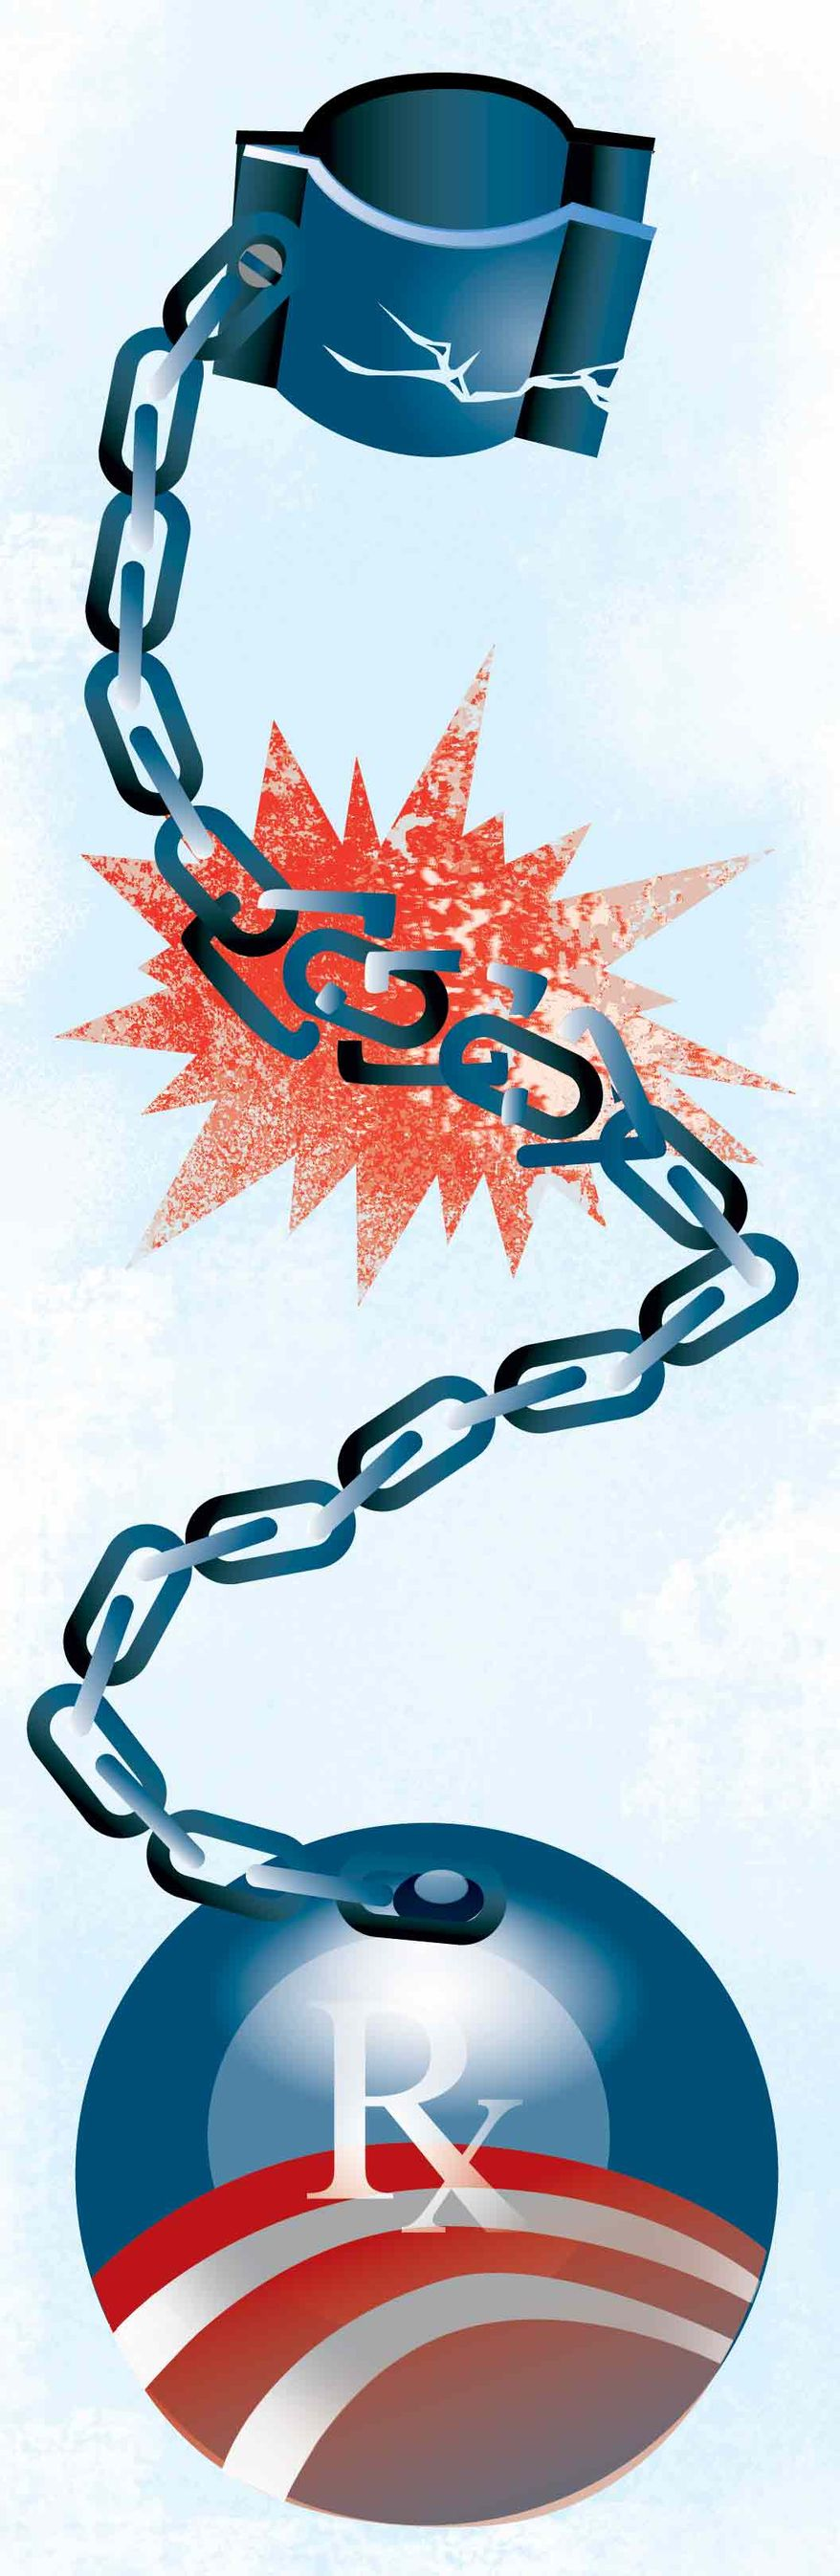 Illustration Breaking the Chains of Obamacare by Linas Garsys for The Washington Times